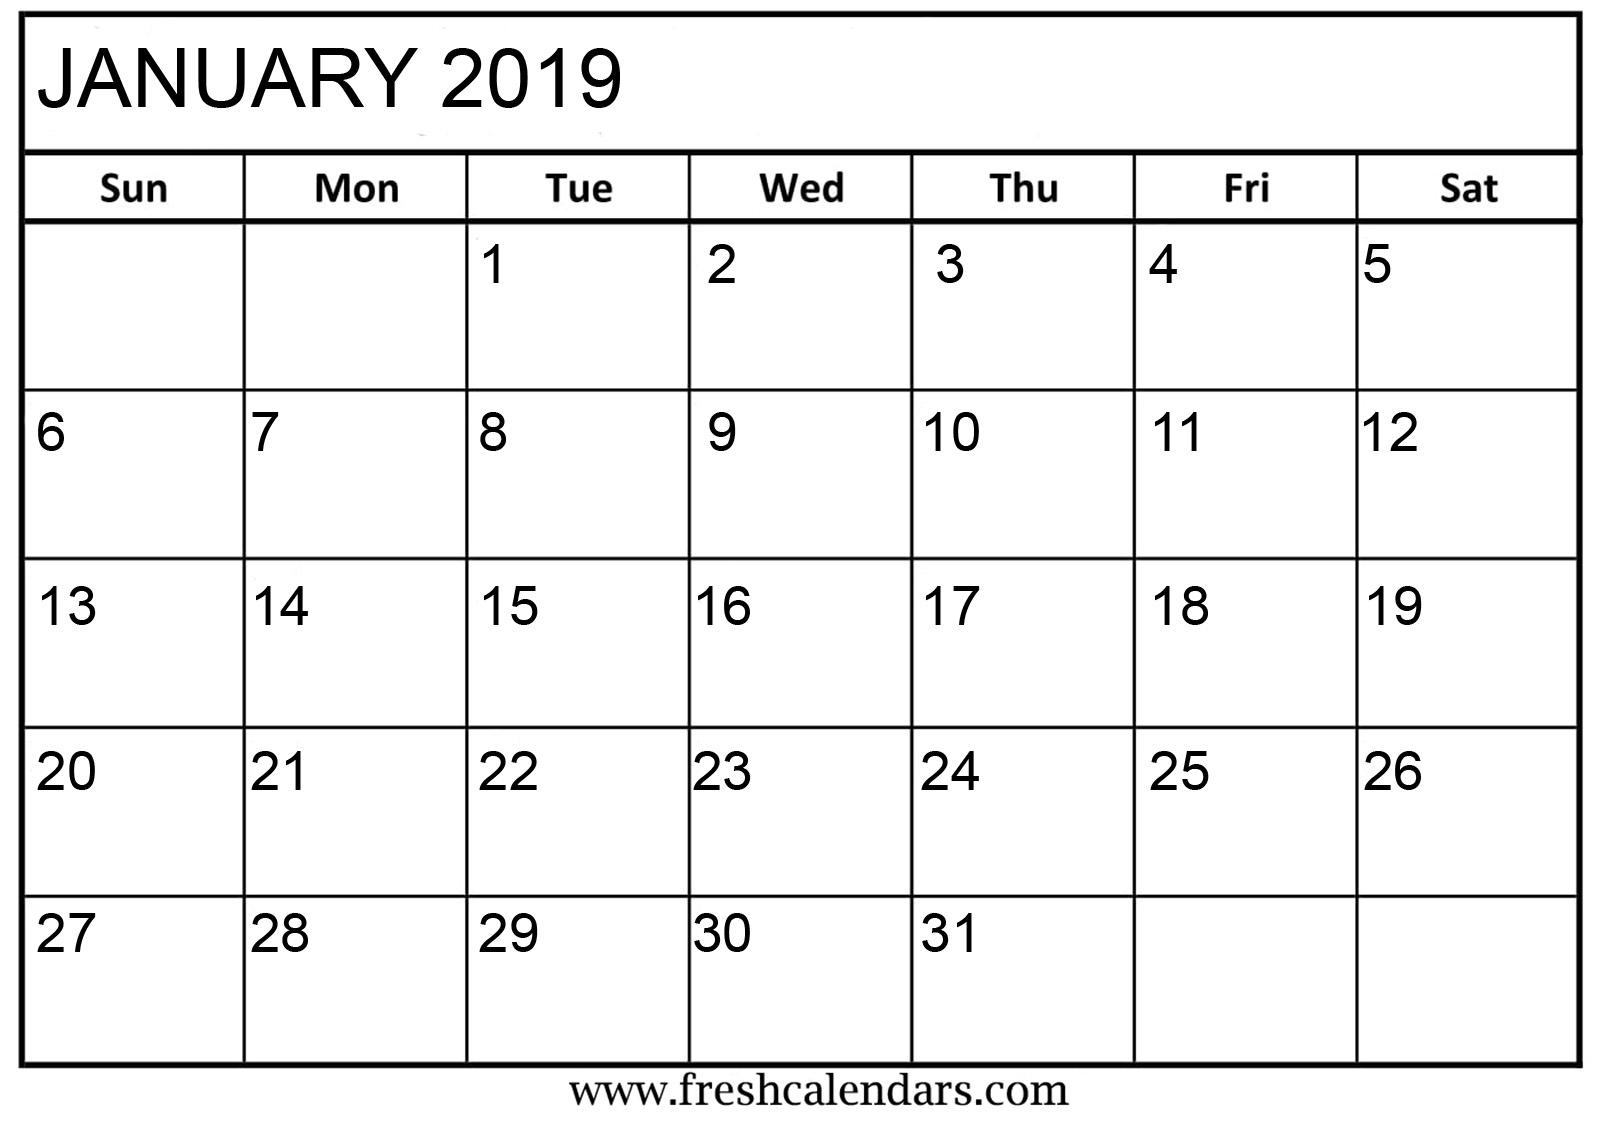 January 2019 Basic Printable Calendar - Printable Calendar 2019 in Blank Calendar Print-Outs Fill In With Holidays